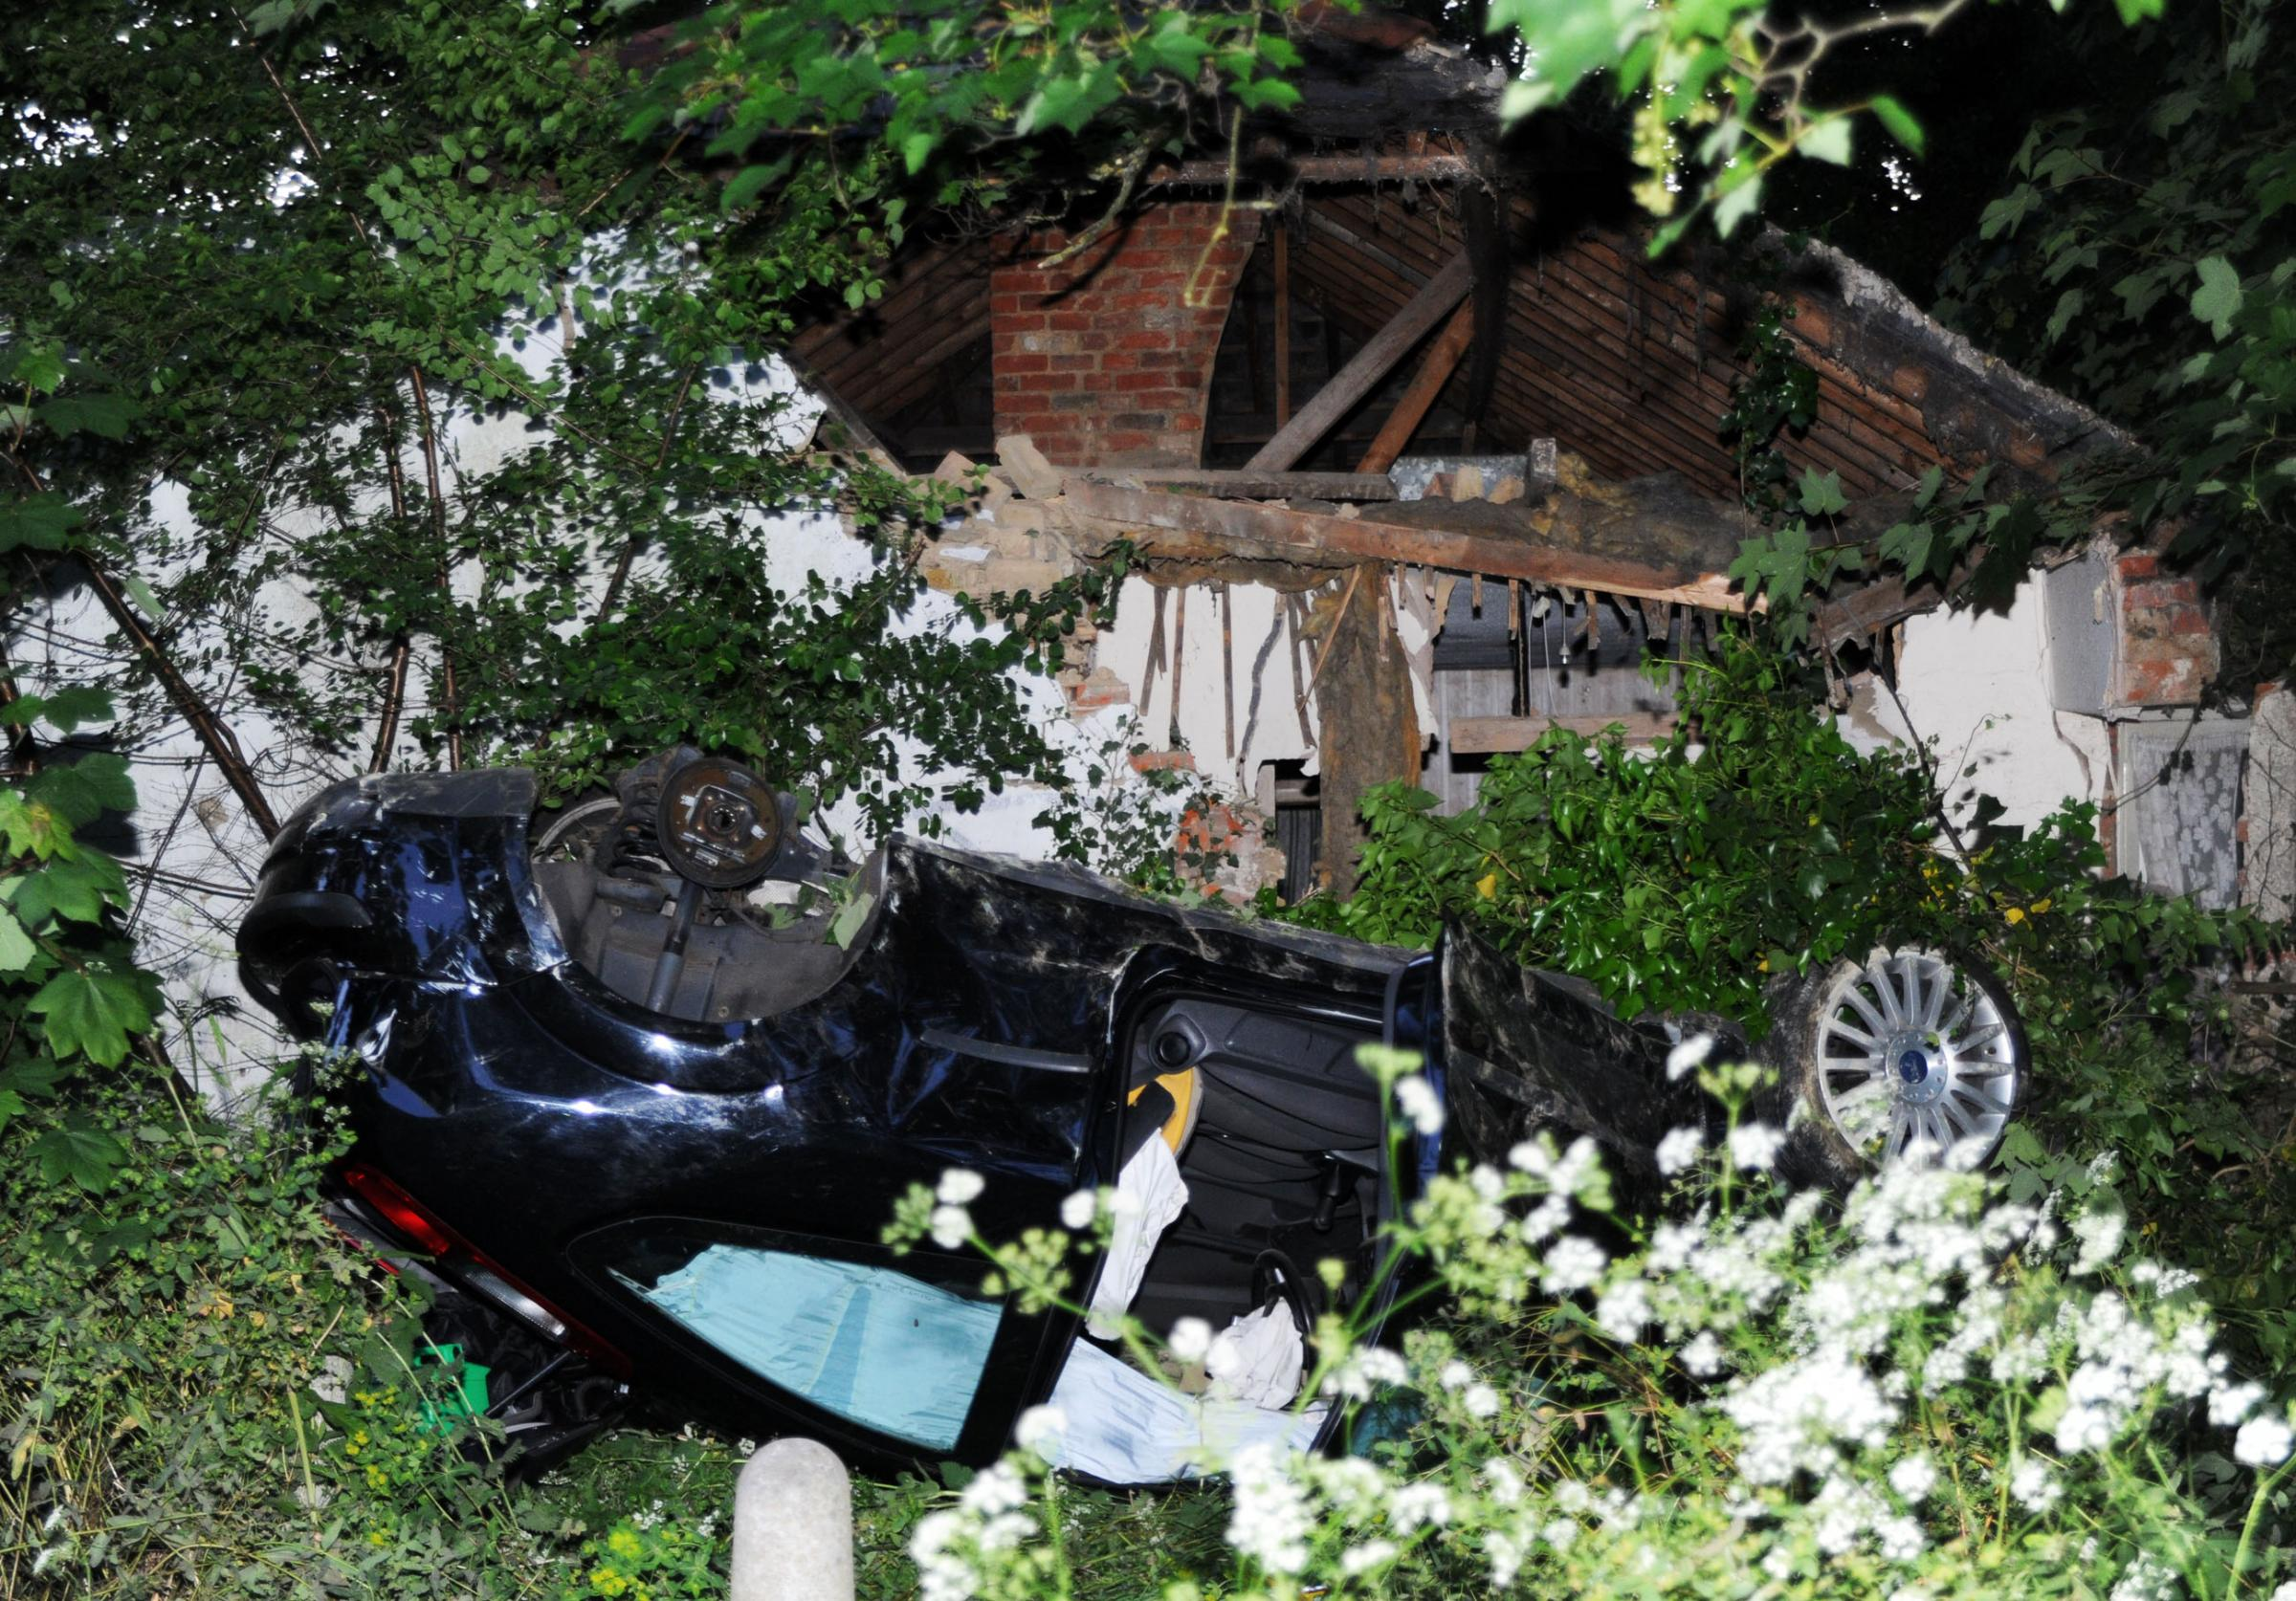 Car involved in police chase flips upside down hits bungalow - and driver gets away